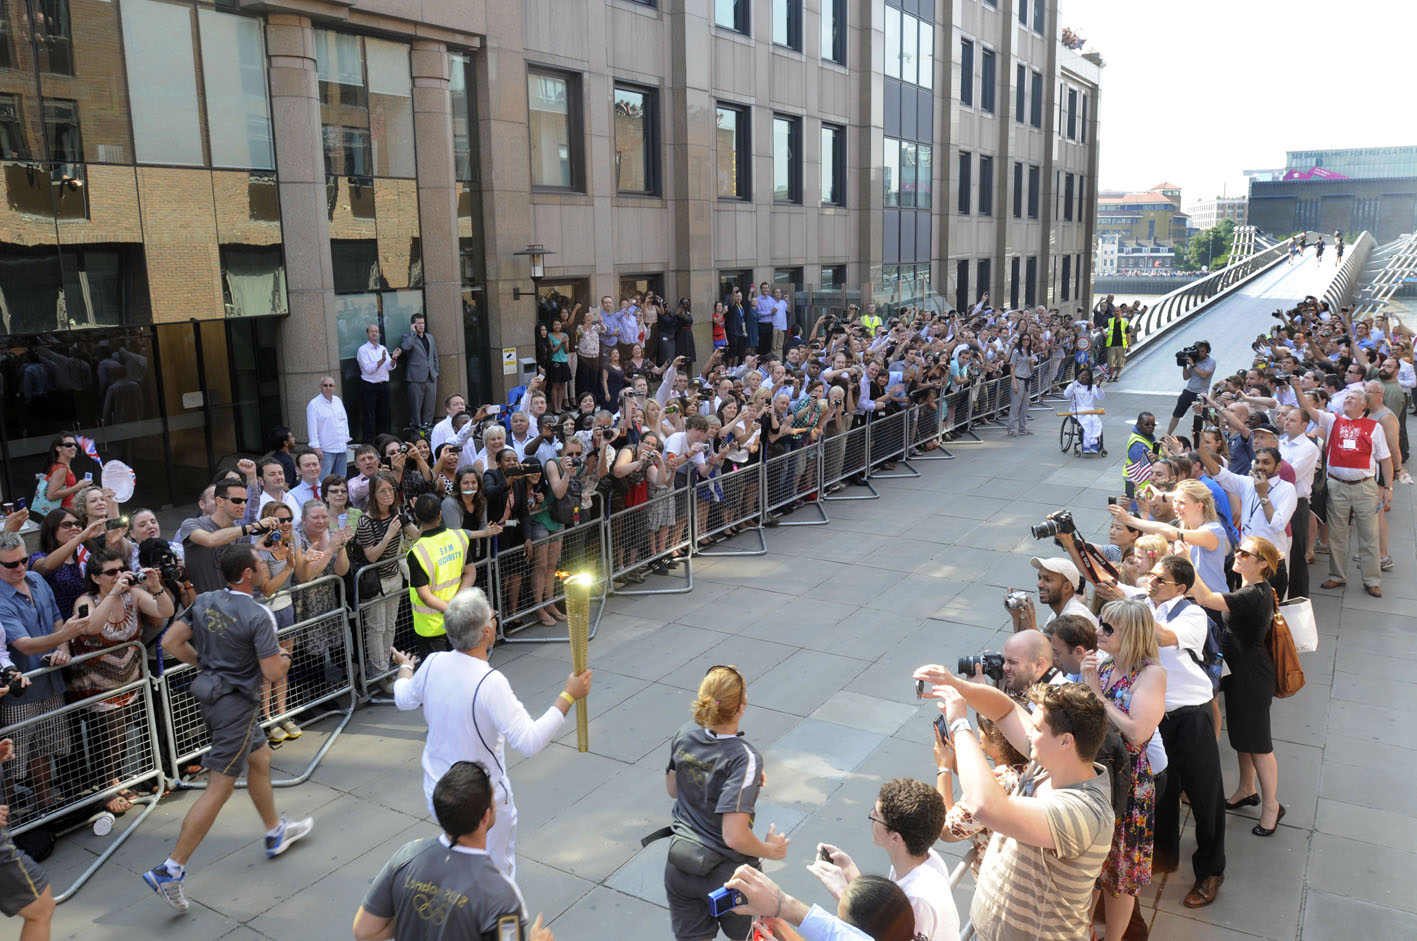 Enthusiastic crowds greet the Olympic Torch Relay as it is carried on to the north side of the Millennium Bridge in central London before being taken by a new torch bearer across the River Thames to south London© Stefano Cagnoni - reportdigital.co.uk01789 262151 07831 121483info@reportdigital.co.ukwww.reportdigital.co.ukNUJ recommended terms & conditions apply. Moral rights asserted under Copyright Designs & Patents Act 1988. No part of this photo to be stored, reproduced, manipulated or transmitted by any means without permission.